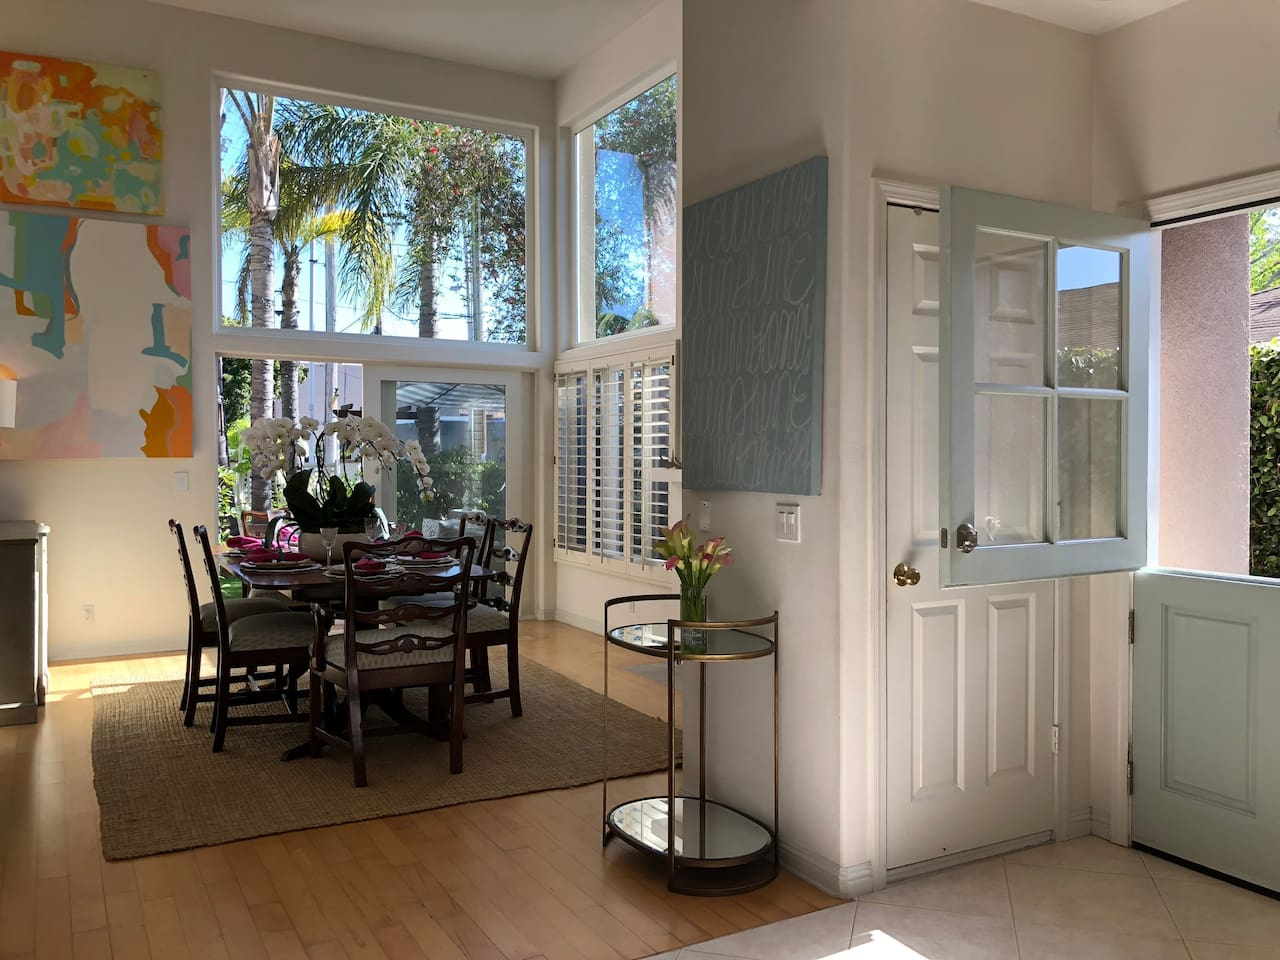 Nothing says welcome like a light turquoise Dutch door